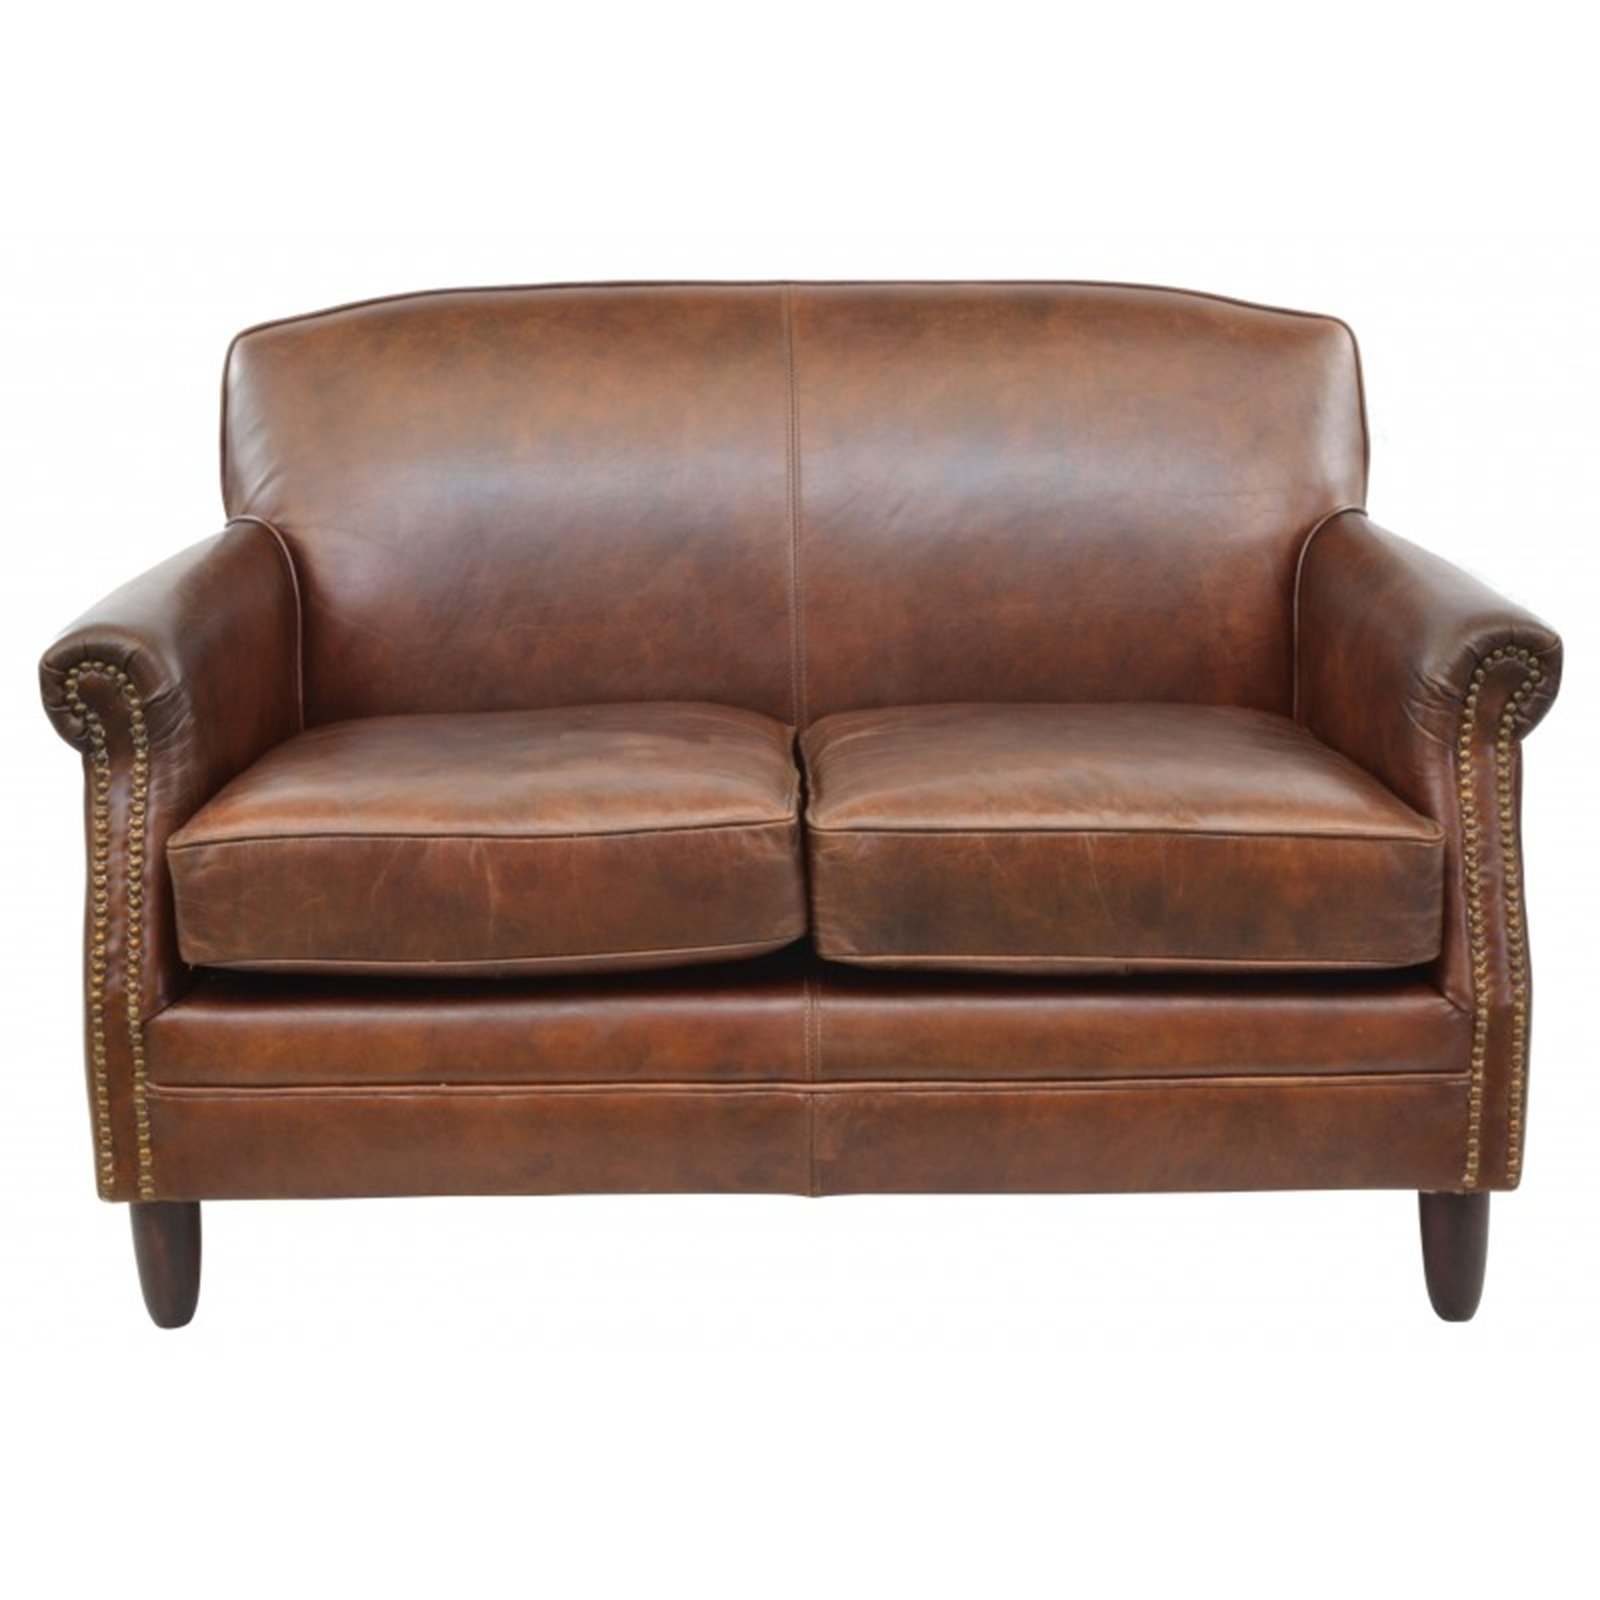 You can easily blend any décor with a leather sofa because leather fabric can complement any style. Leather 2 Seater Sofa